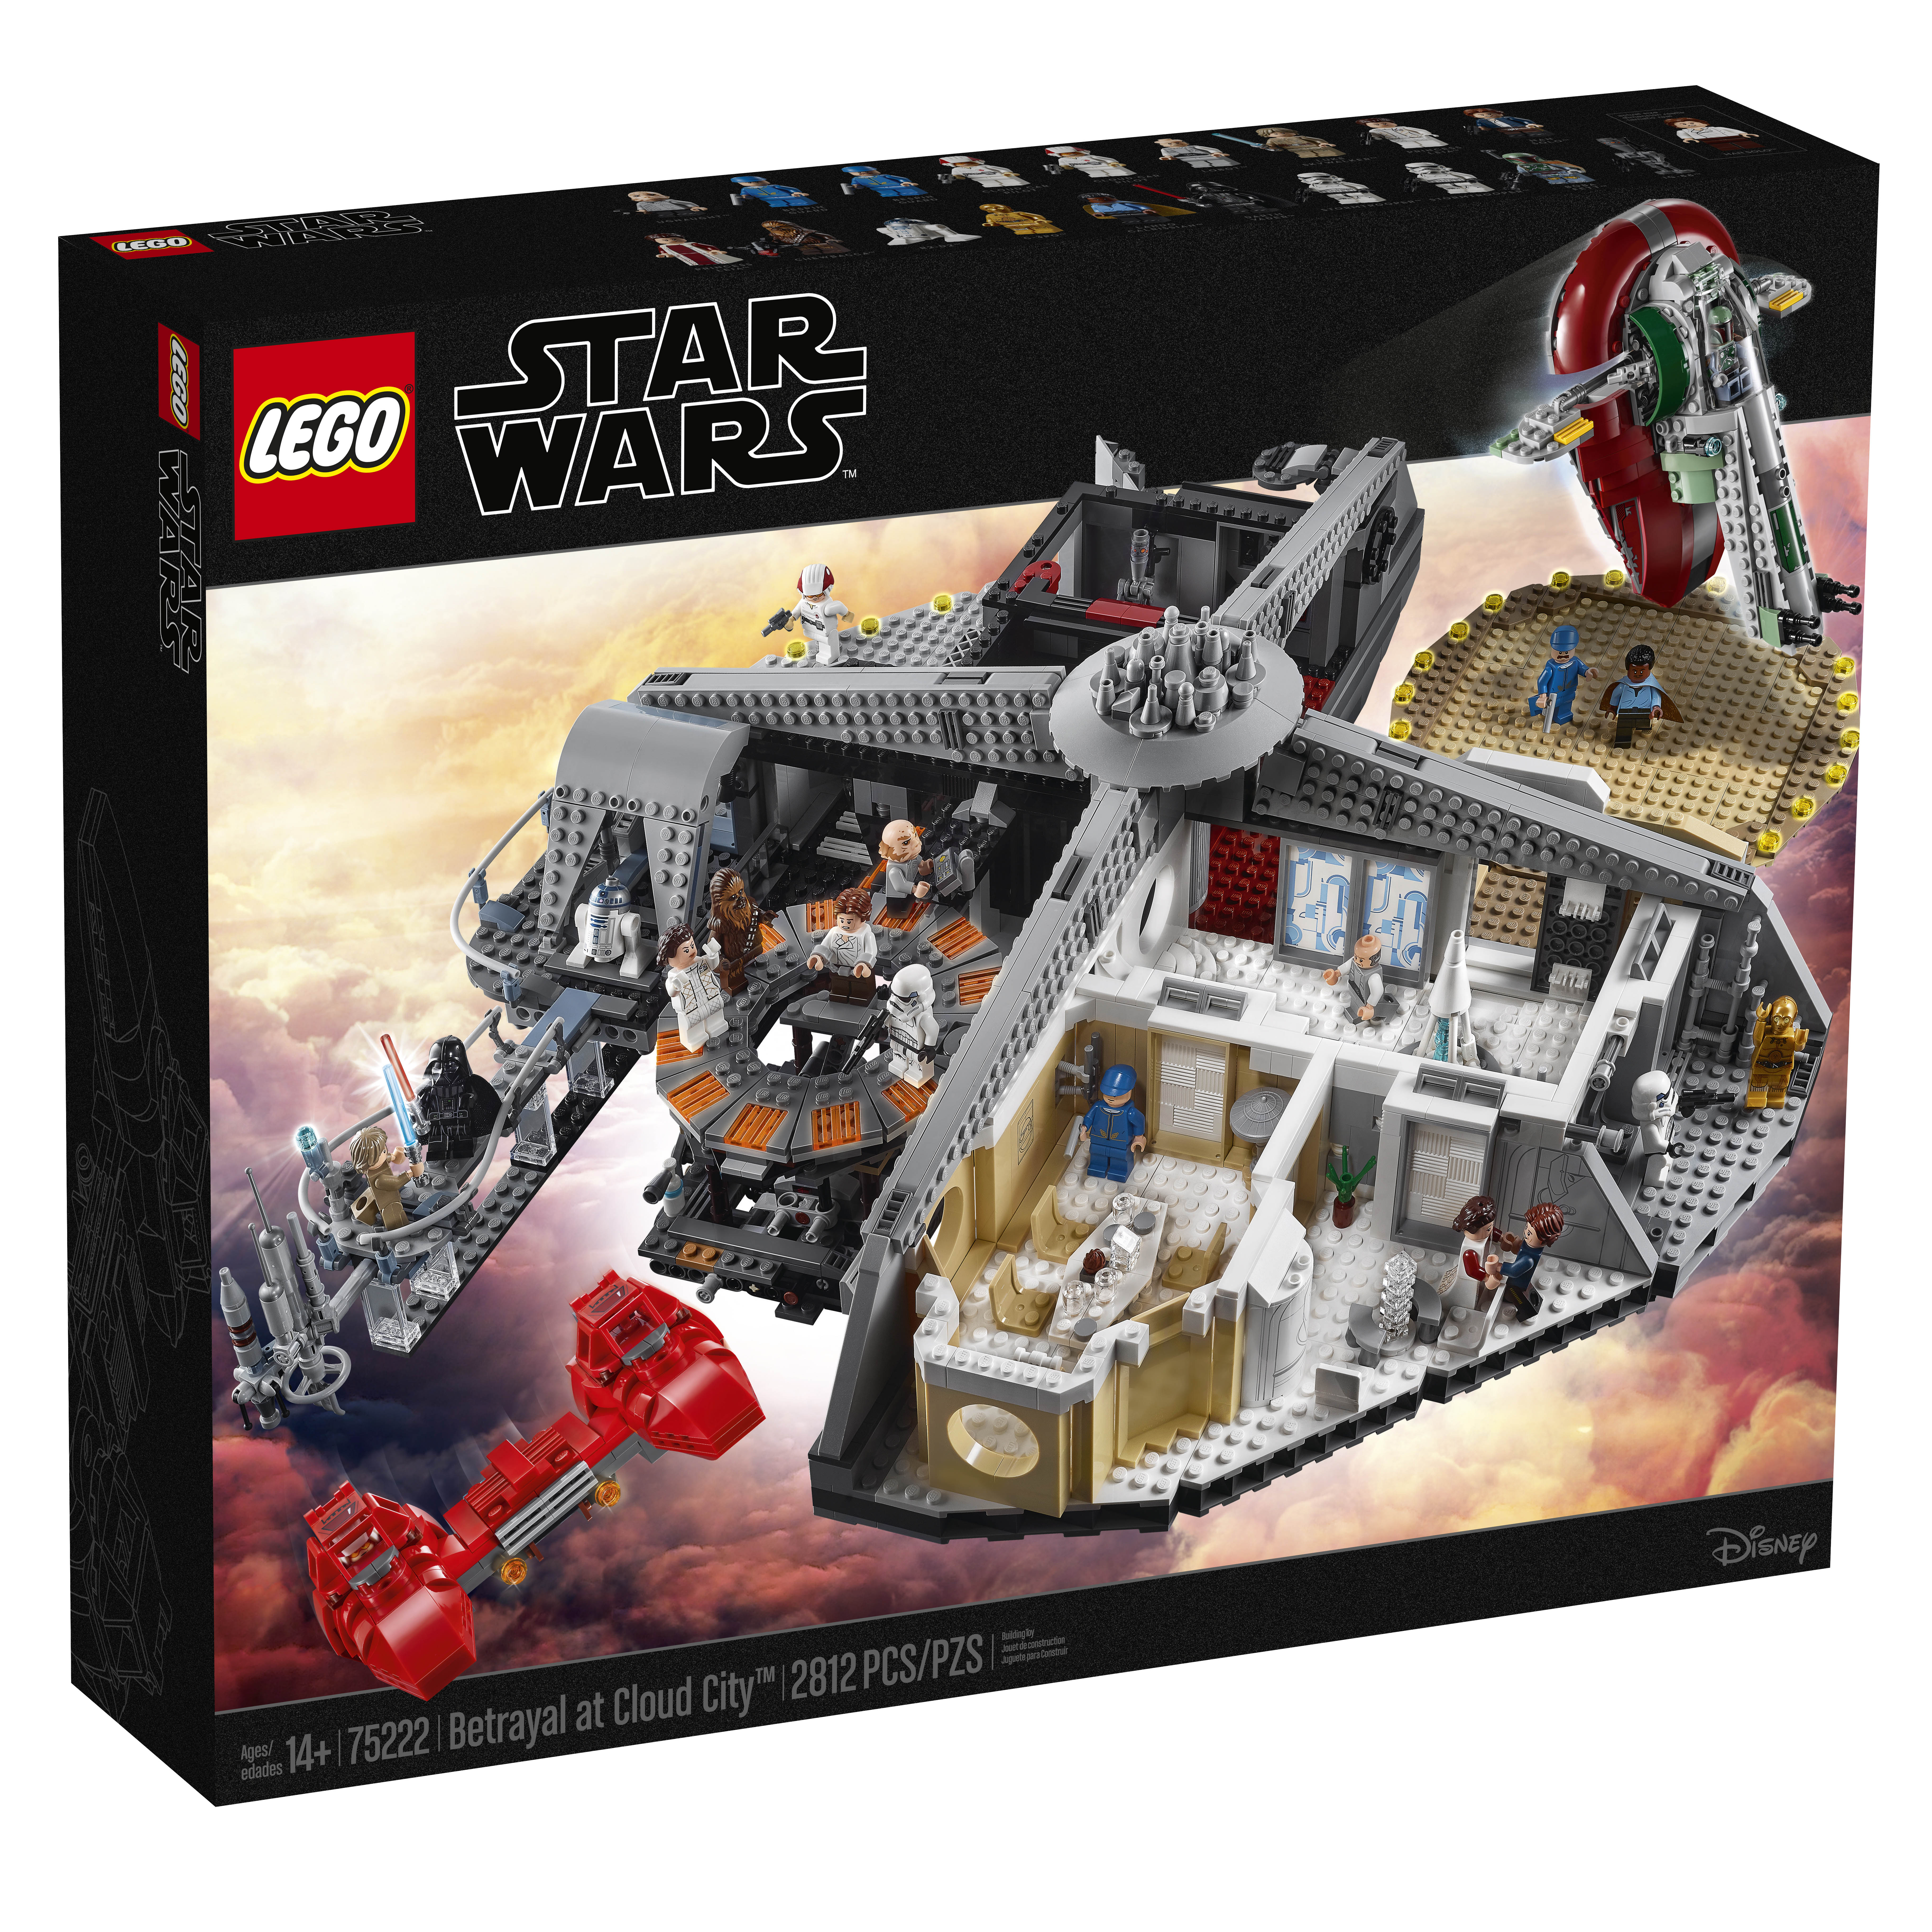 Lego Star Wars Betrayal At Cloud City 75222 Officially Announced